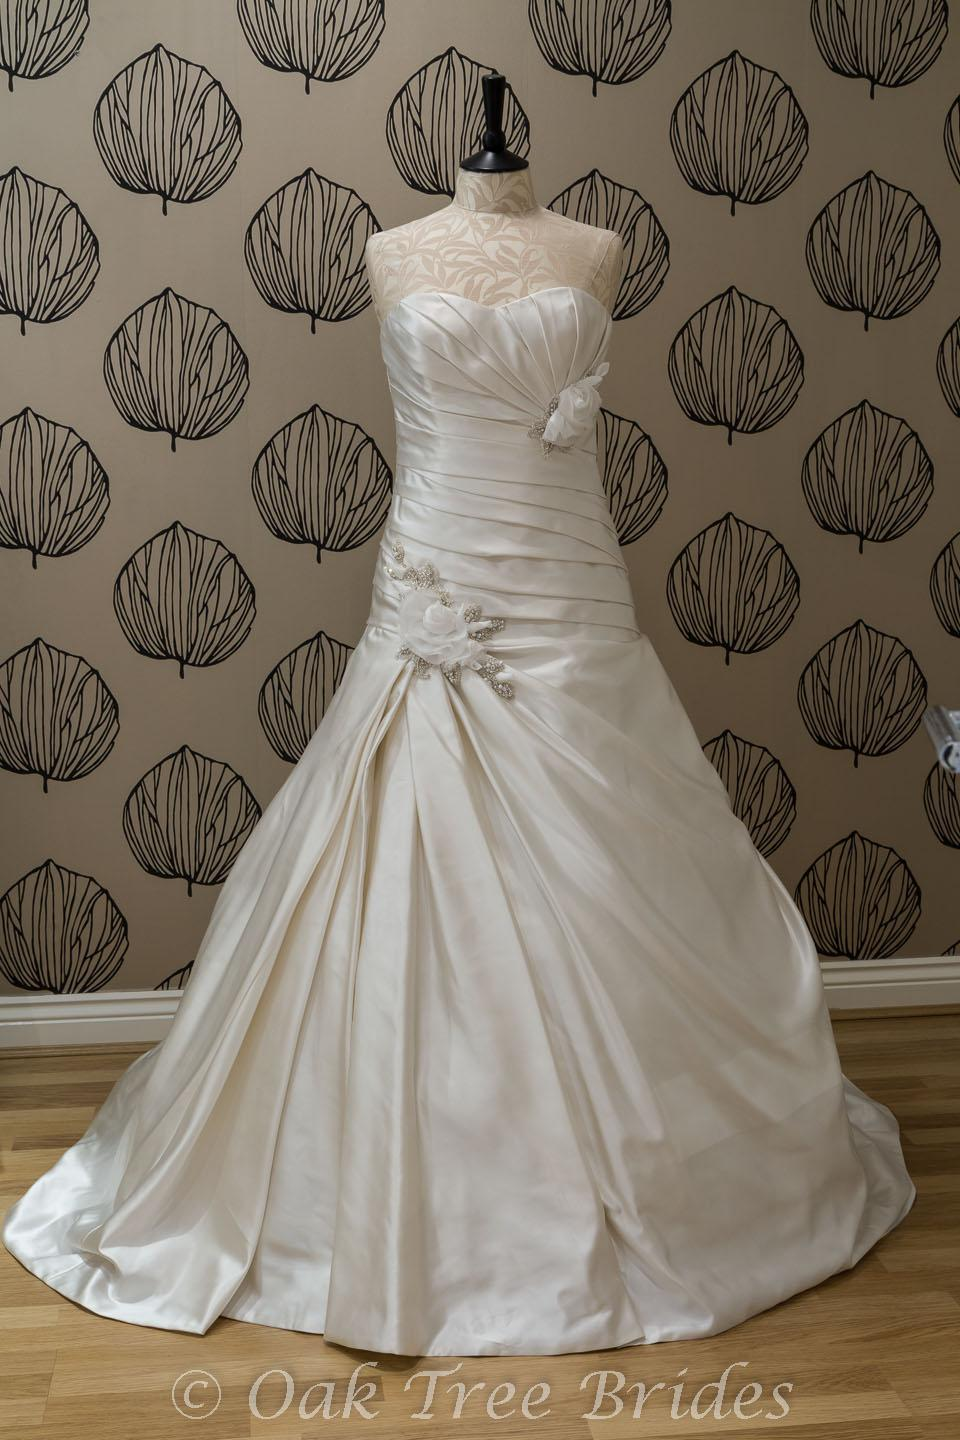 Sample wedding dresses new wedding dresses second hand for Best wedding dresses for size 12